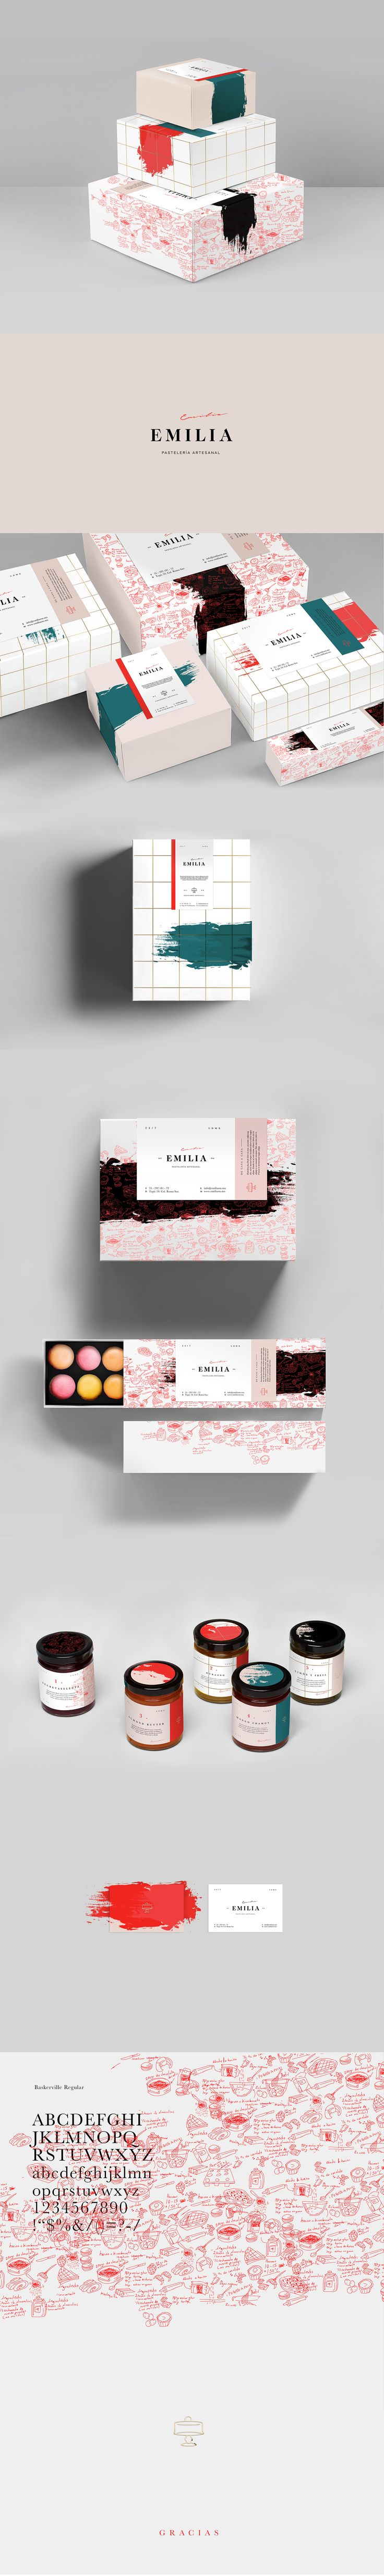 Emilia Pasteleria Artesanal Packaging by Karla Heredia Martinez